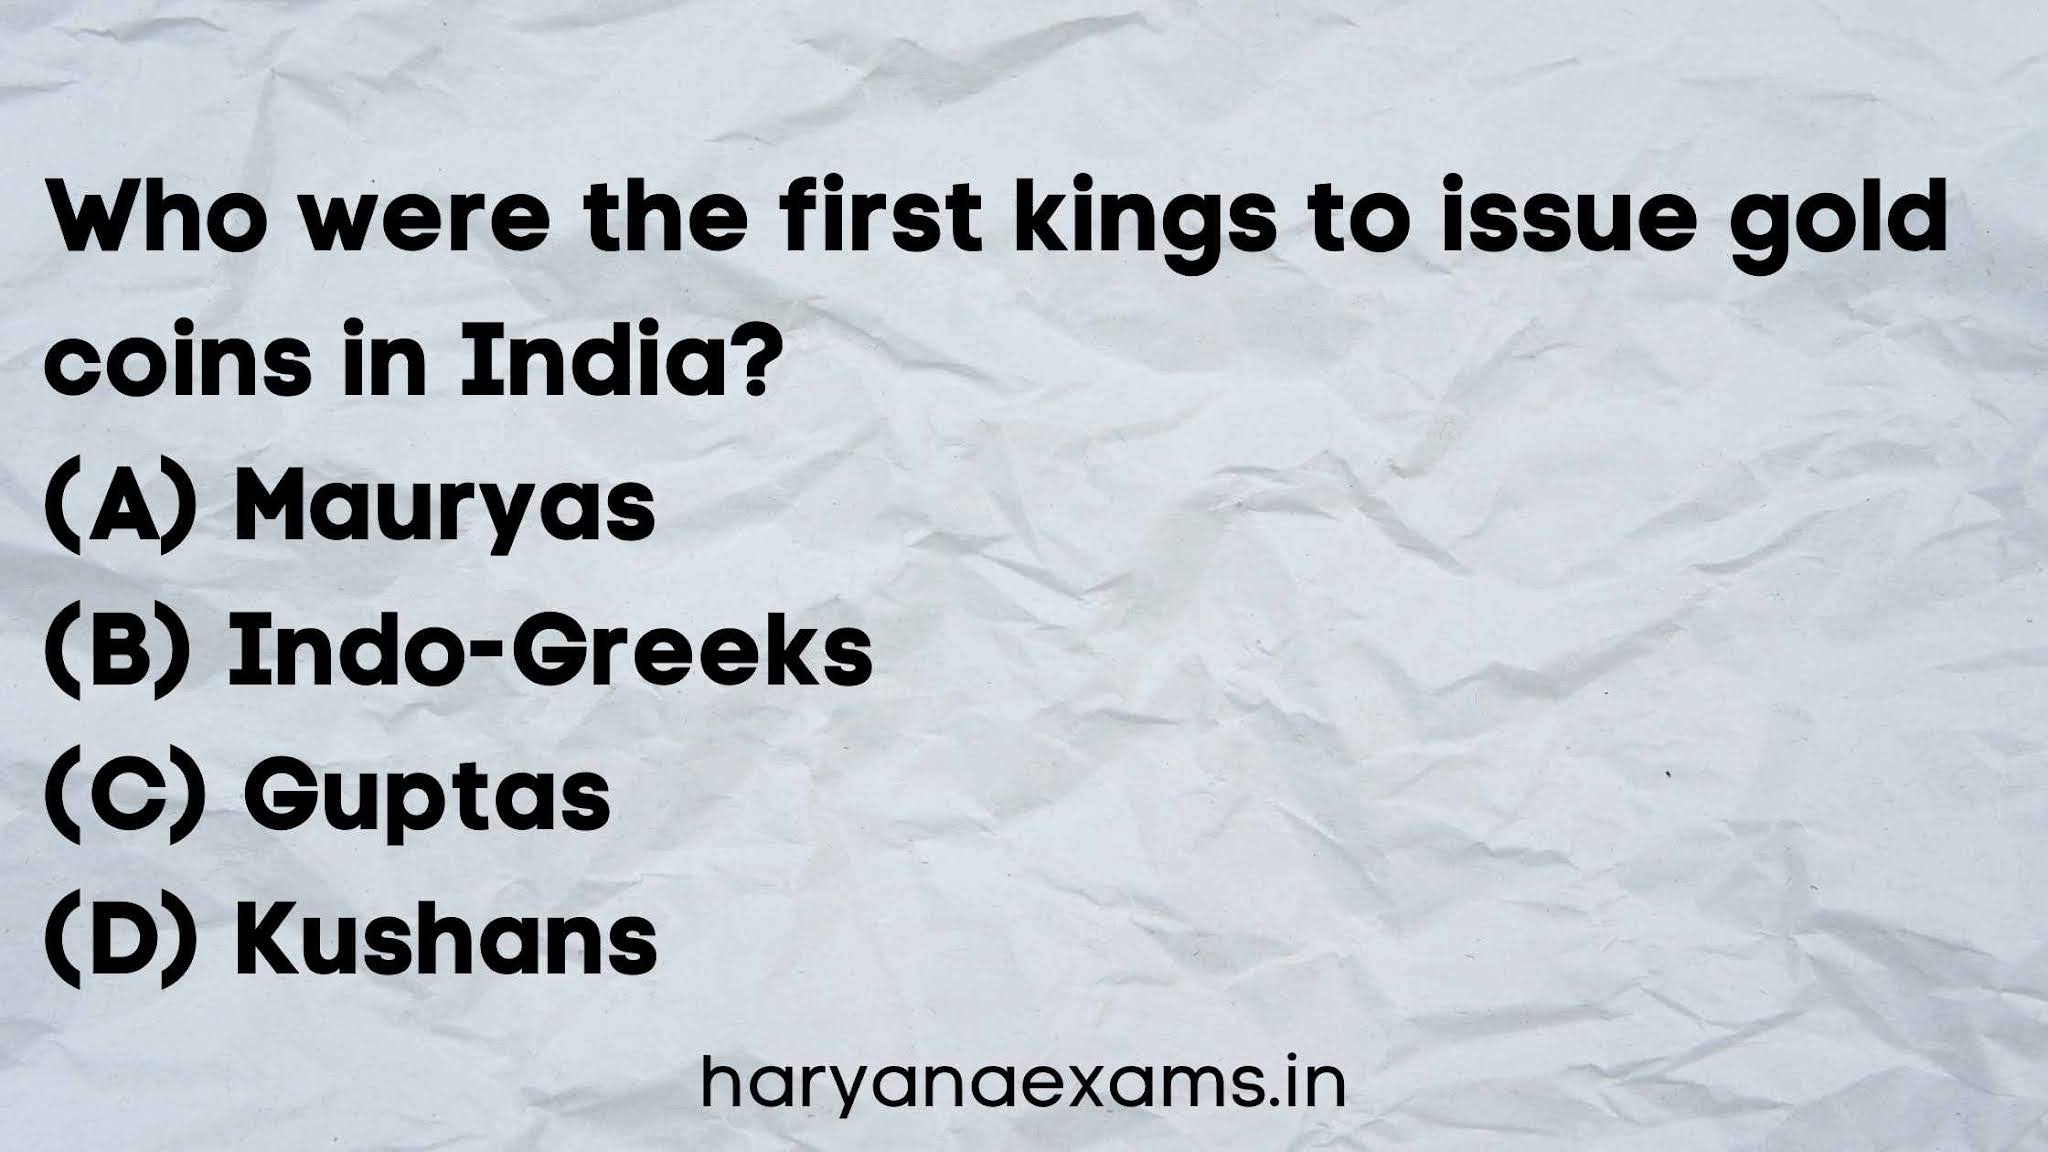 Who were the first kings to issue gold coins in India?   (A) Mauryas   (B) Indo-Greeks   (C) Guptas   (D) Kushans